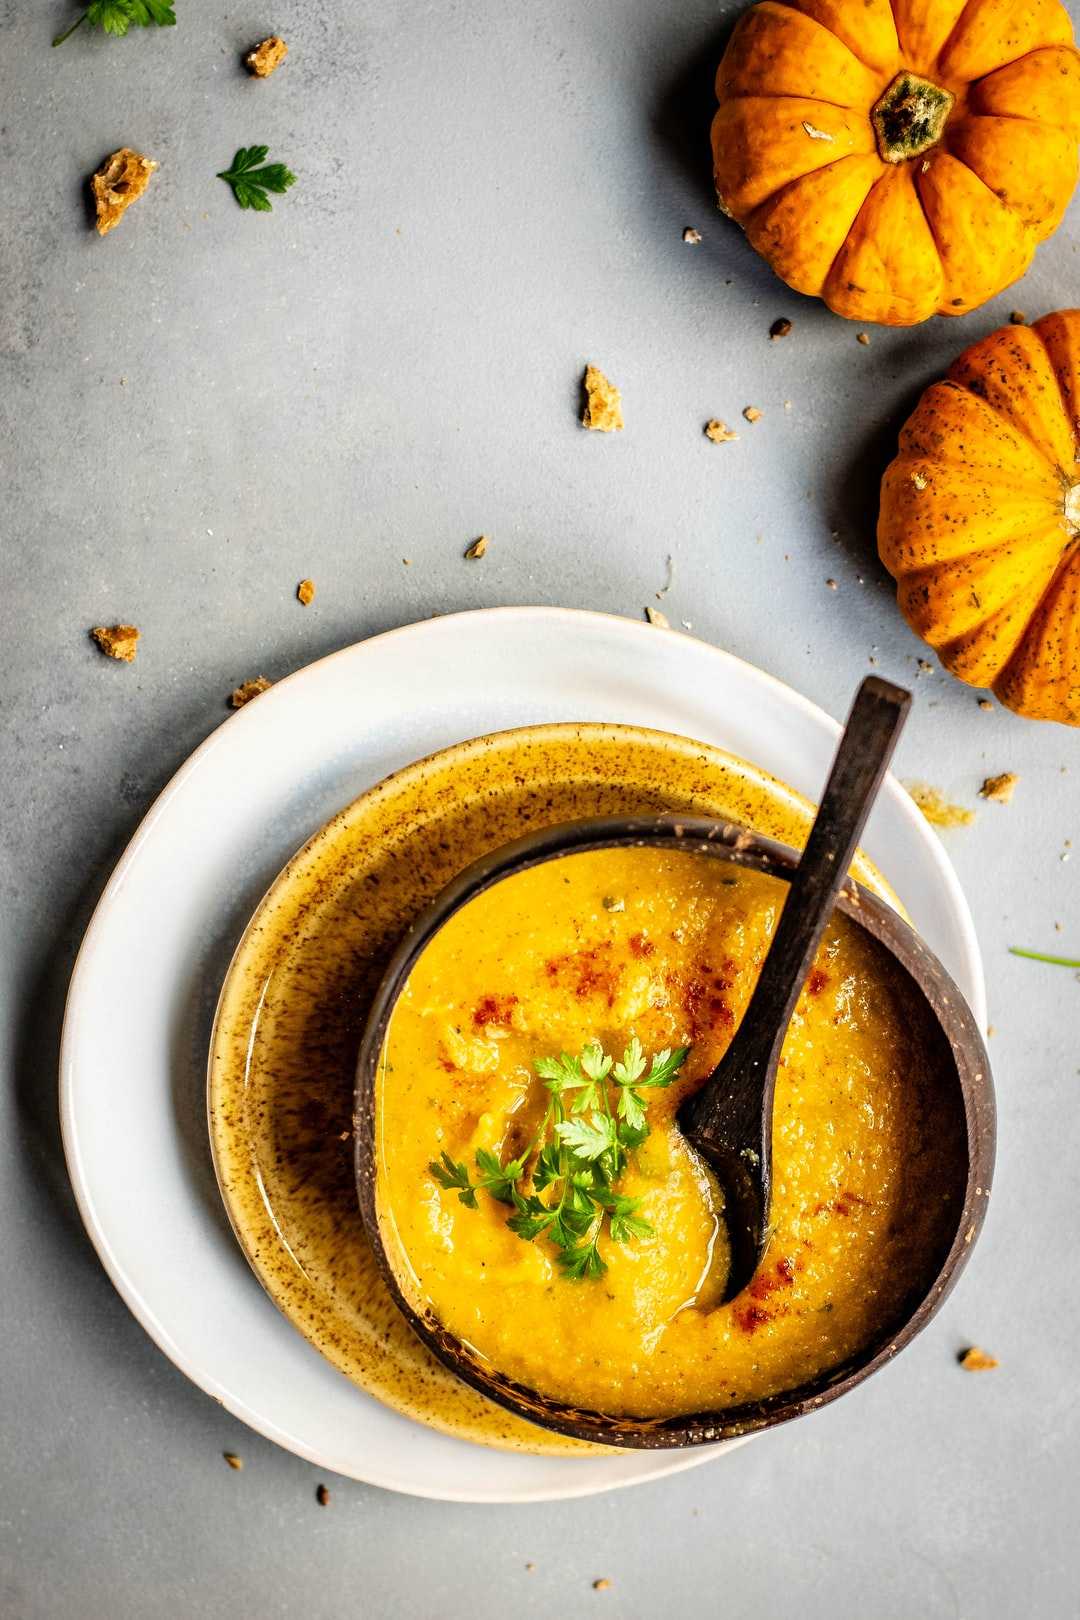 Do you feel the coming winter too? This spicy pumpkin soup really helps to forget that it's so cold outside :)